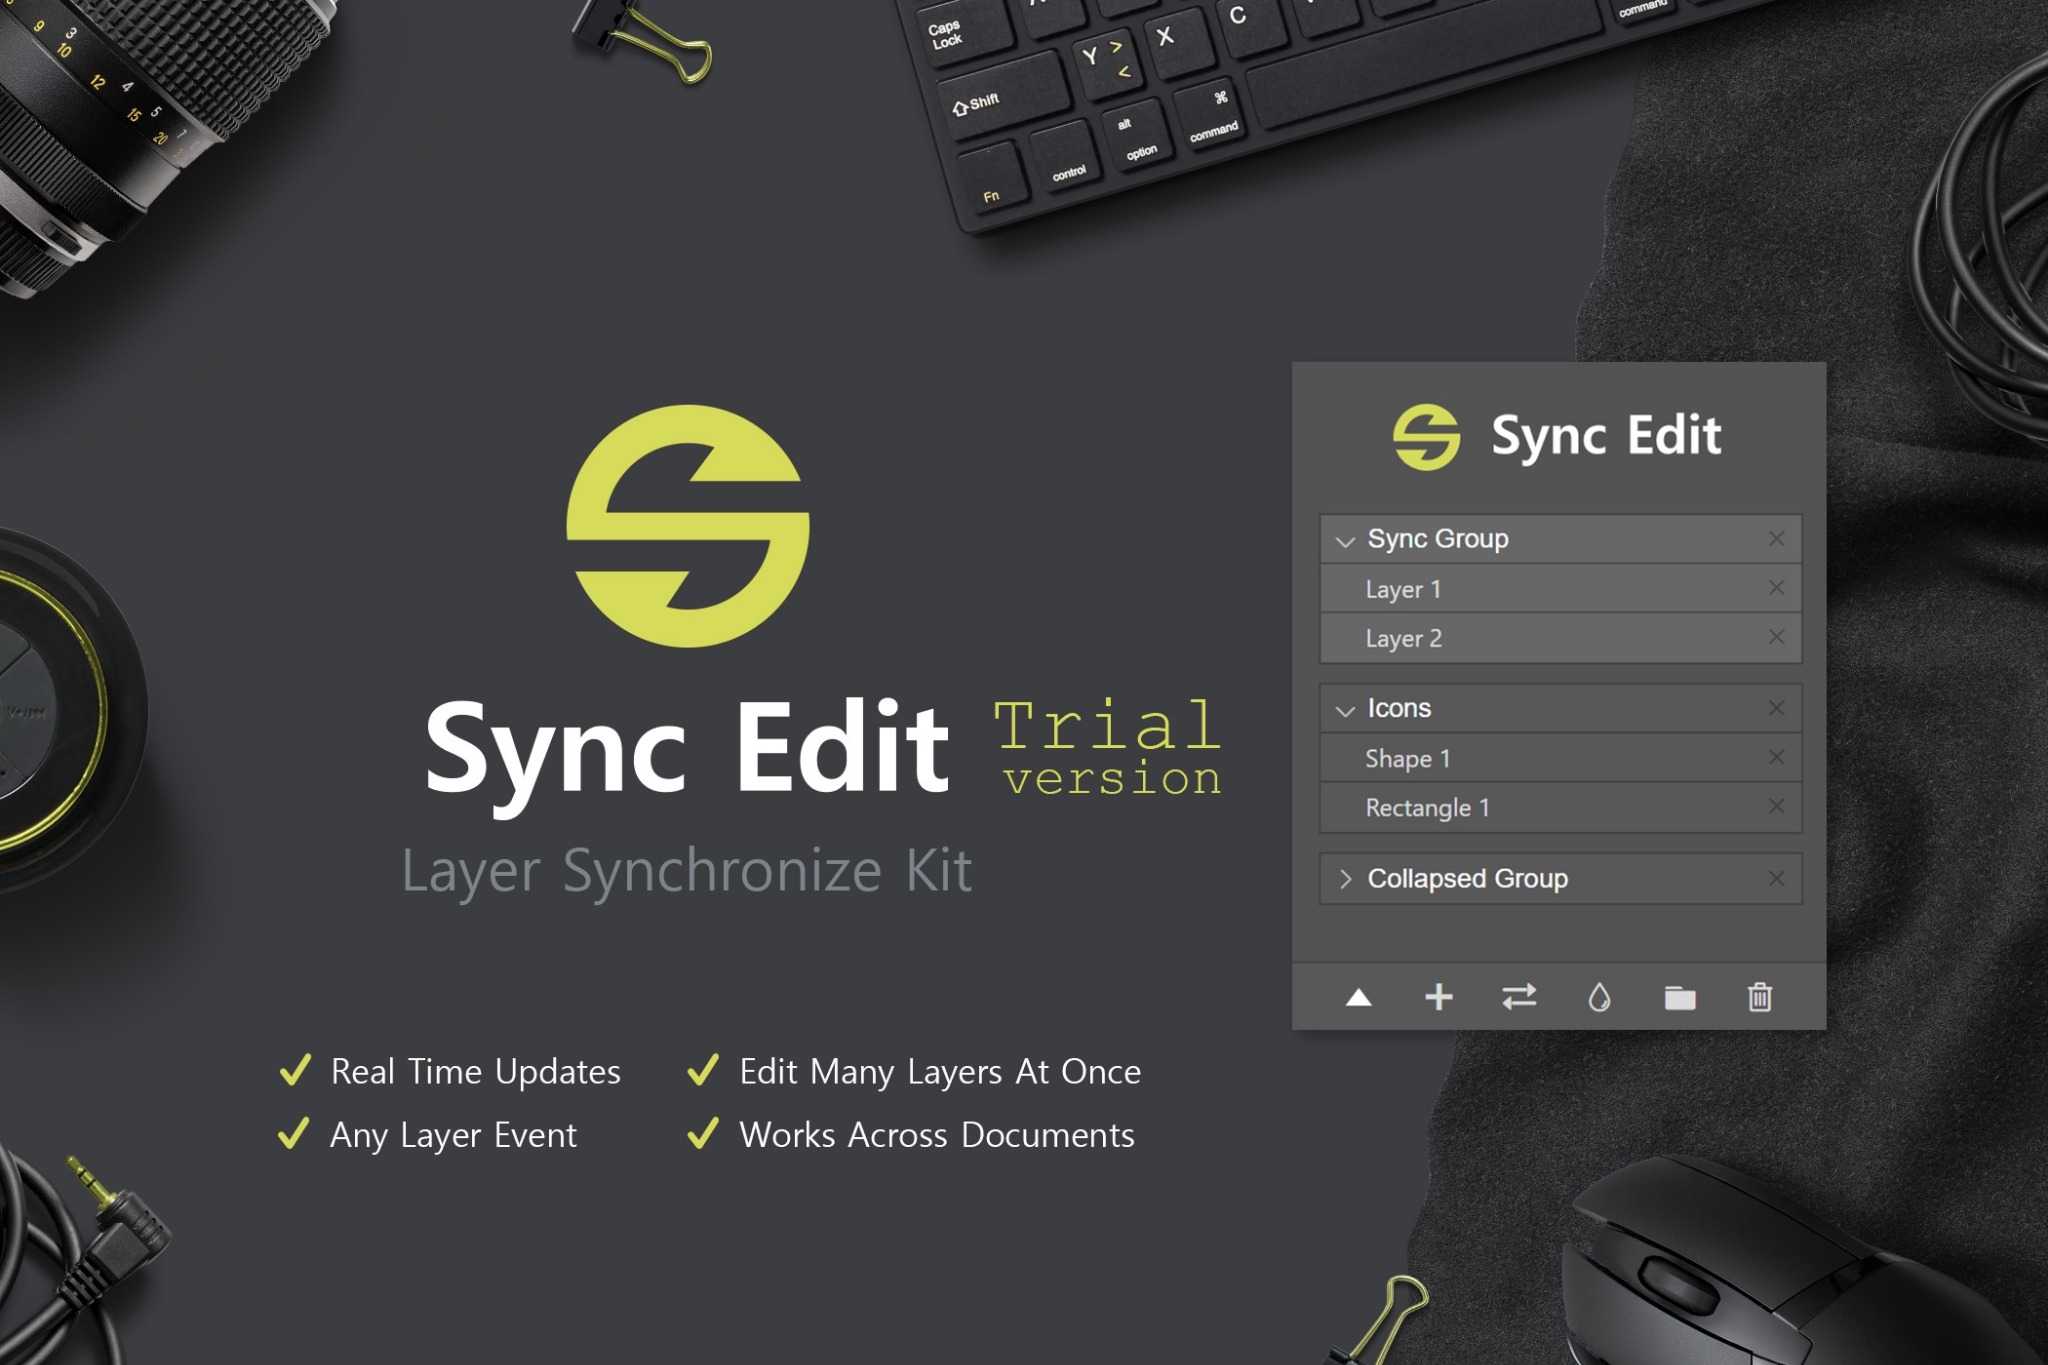 Sync Edit - Layer Synchronize Kit (Trial Version)